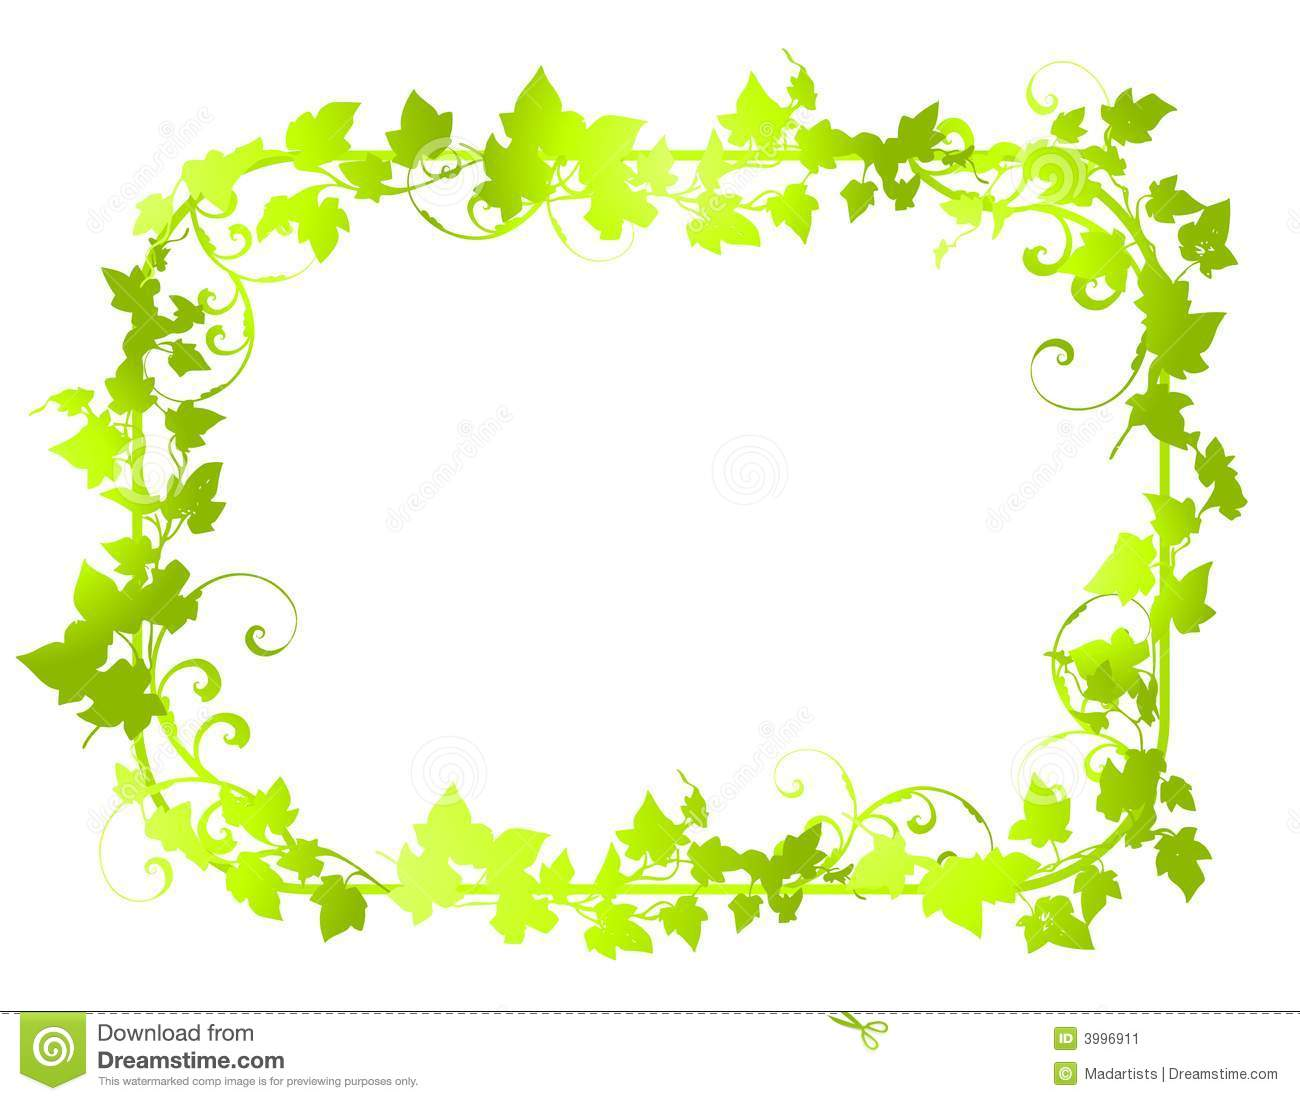 Green Leaves Border   Clipart Panda   Free Clipart Images